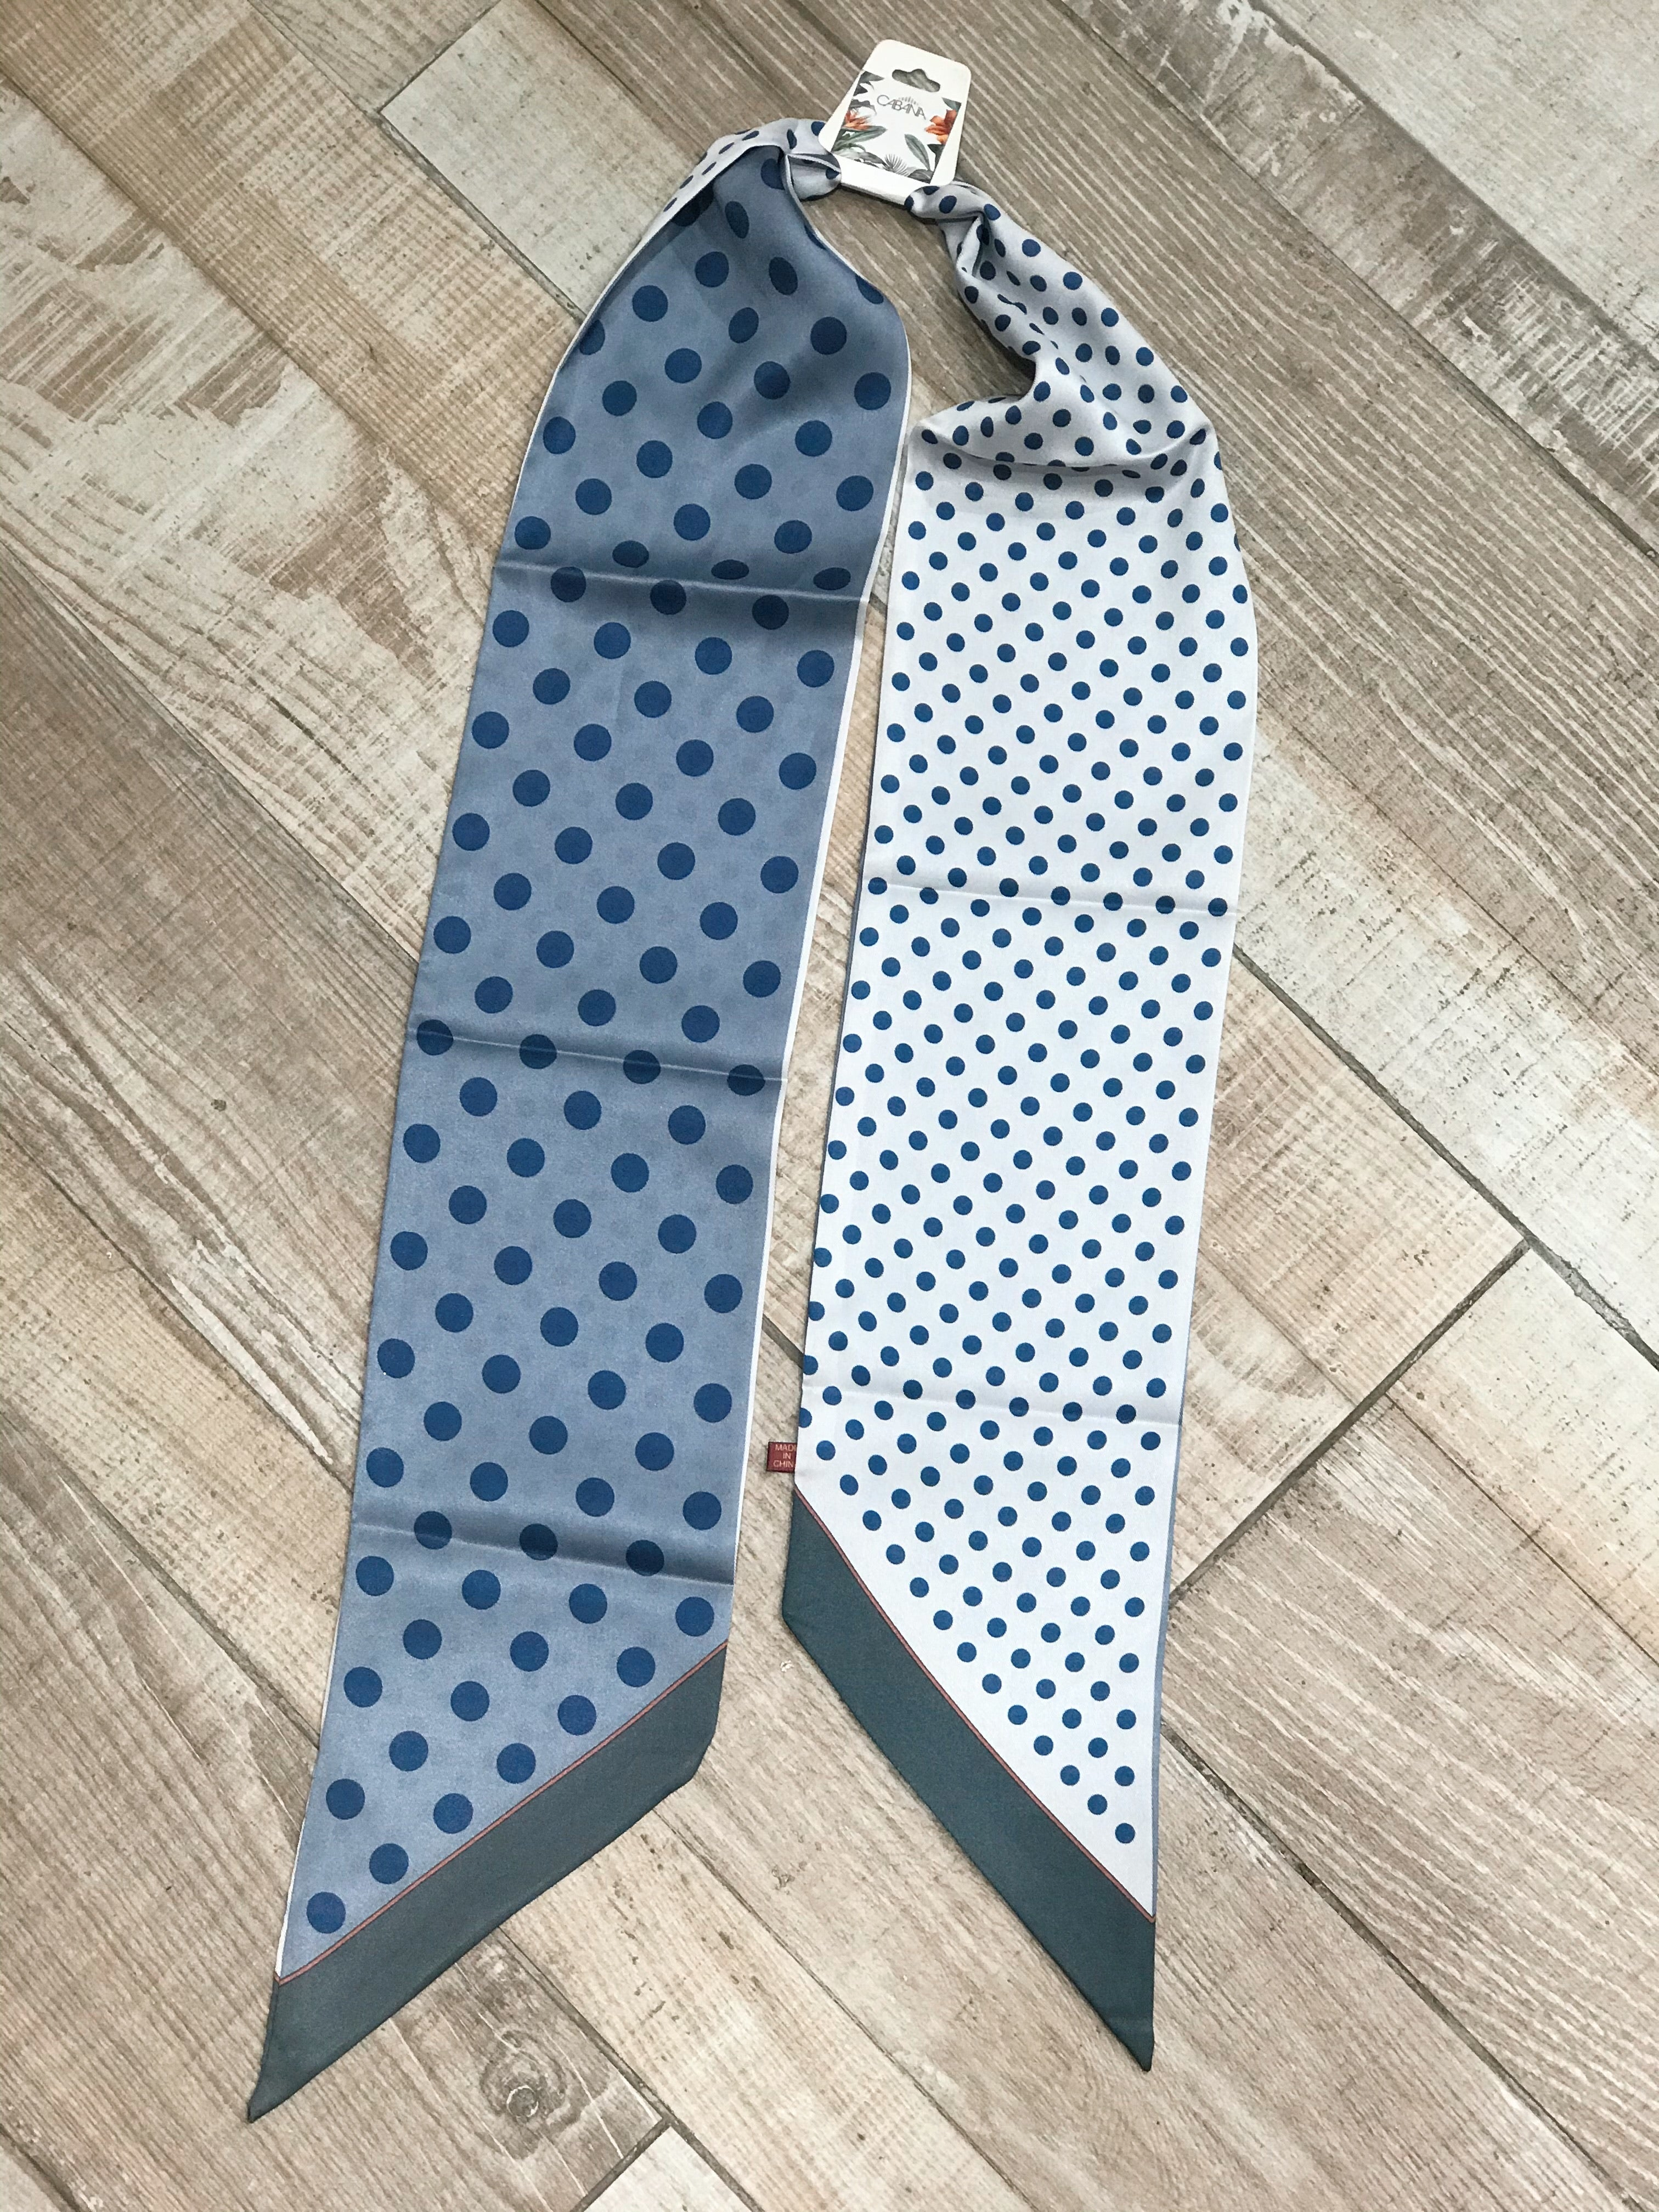 Paris Scarf- Polka (colors available)